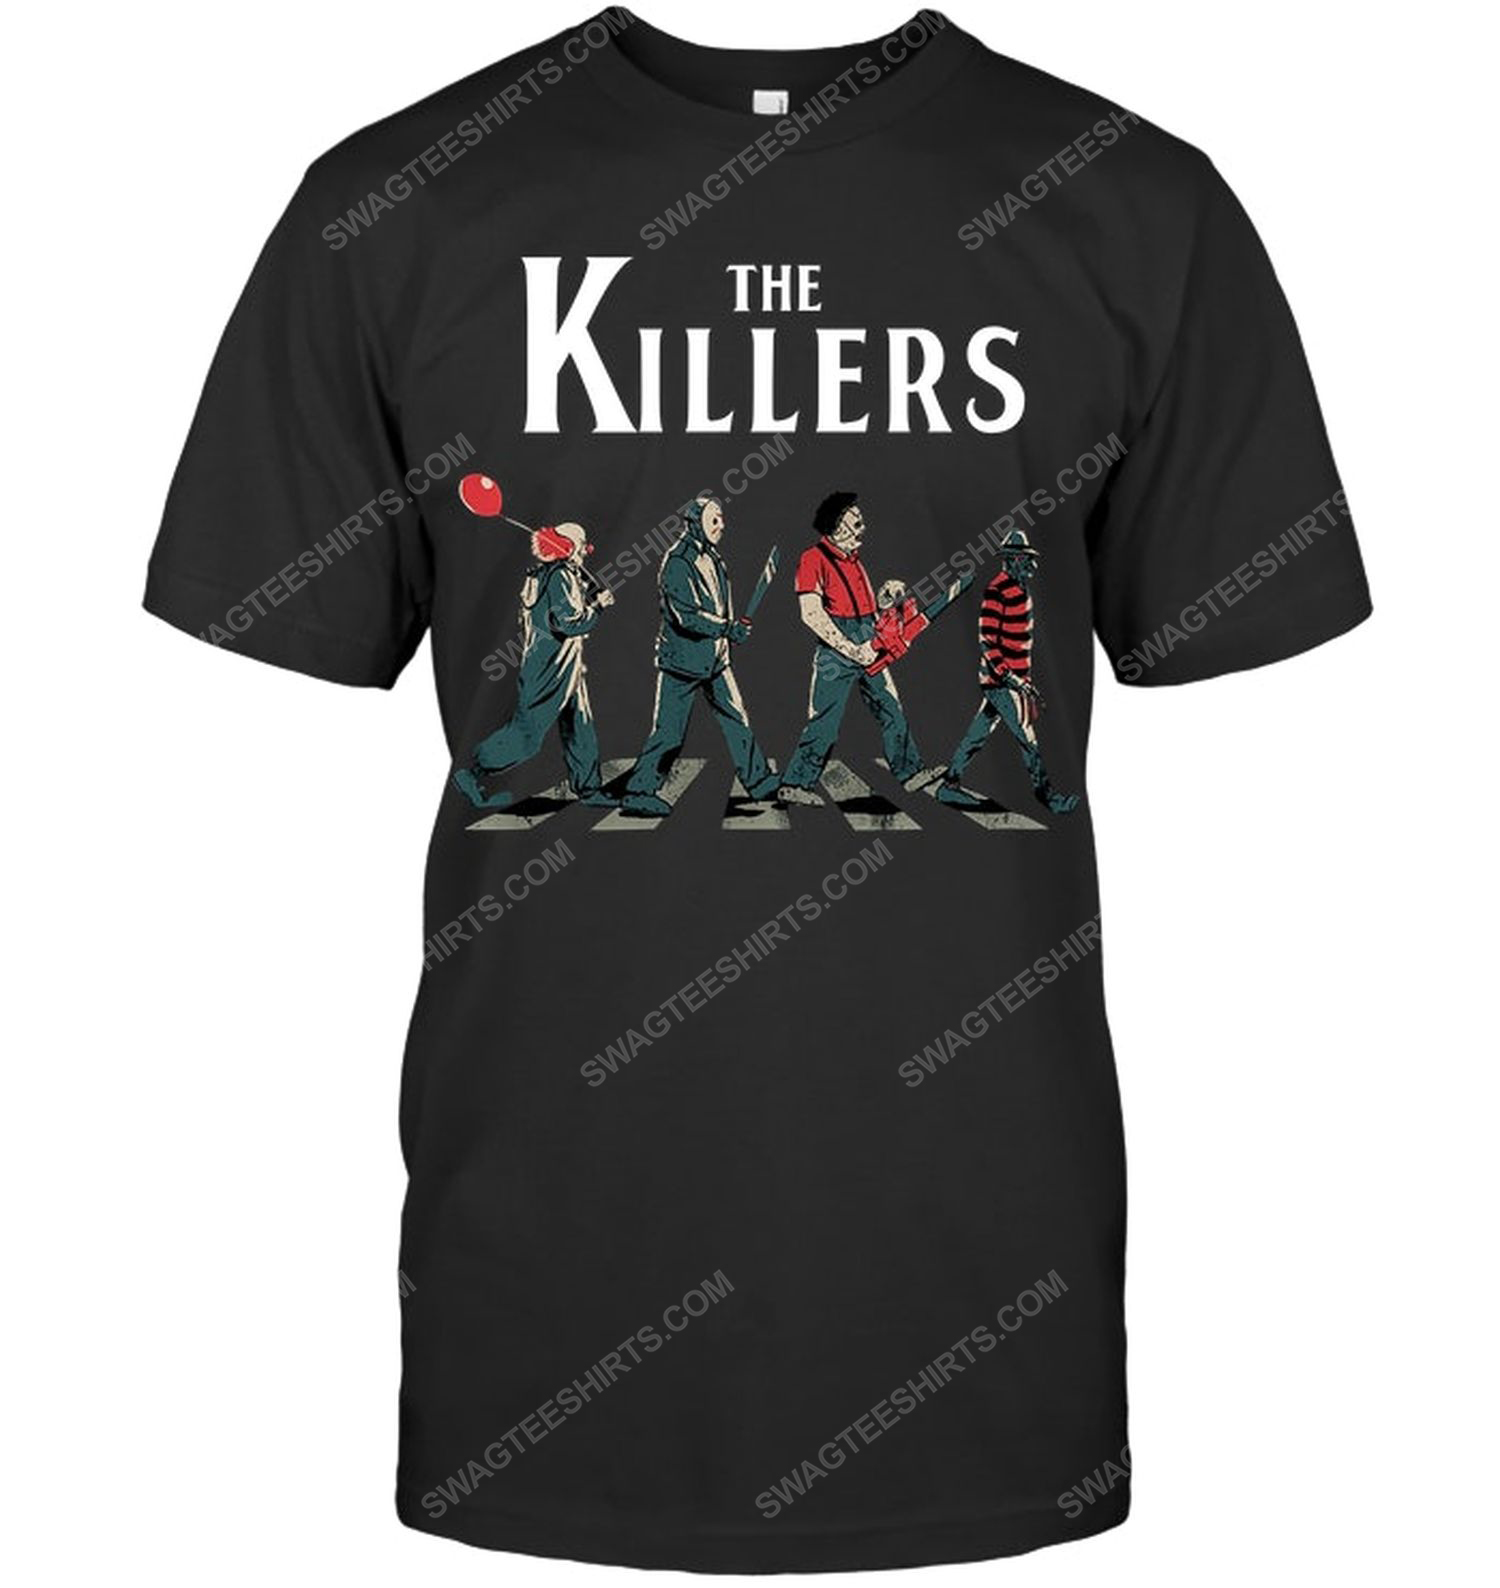 Abbey road the killers for halloween shirt